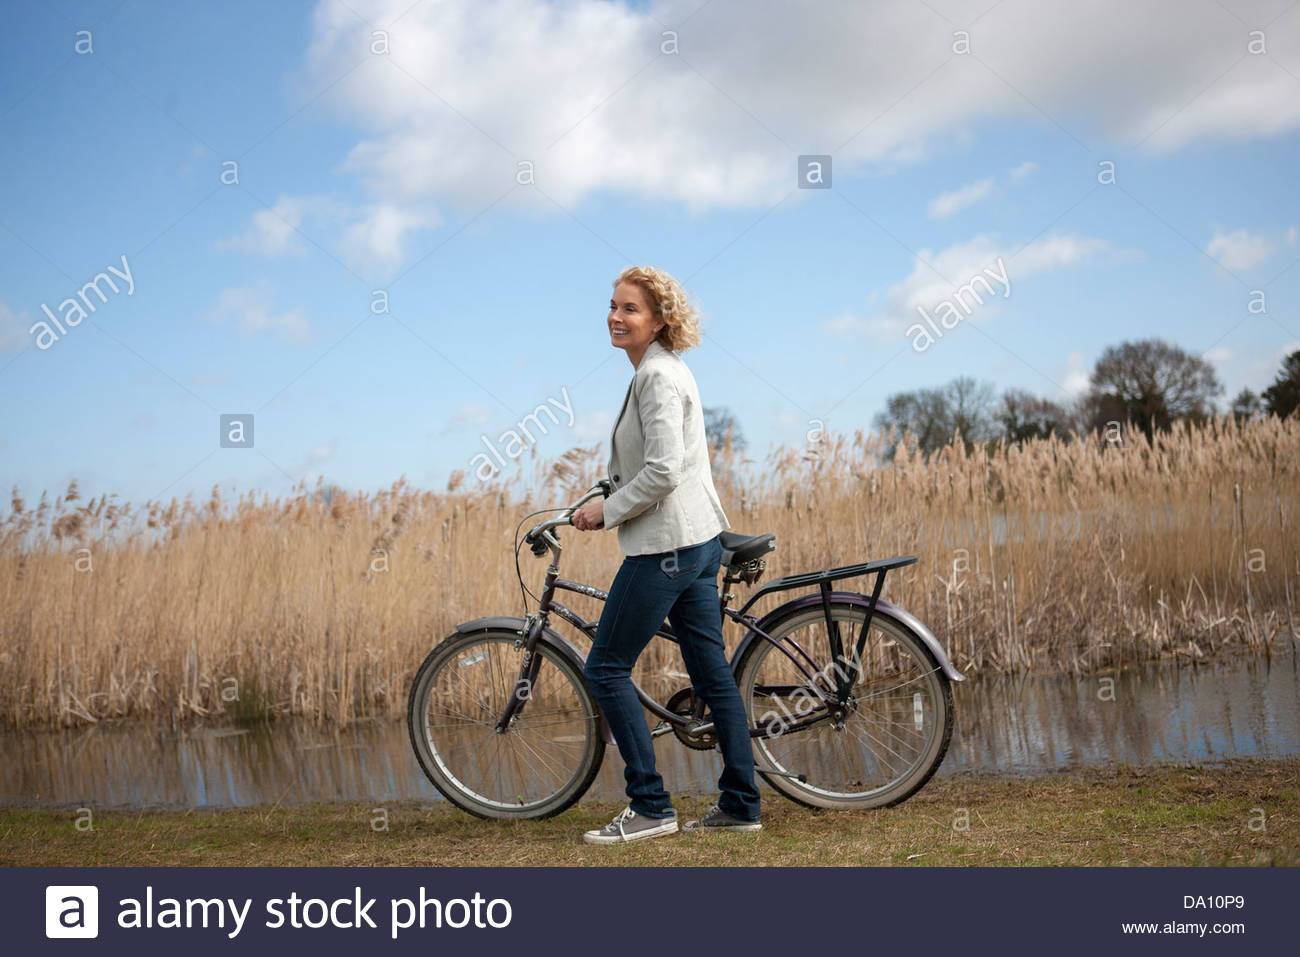 A mature woman pushing a bicycle next to a lake - Stock Image